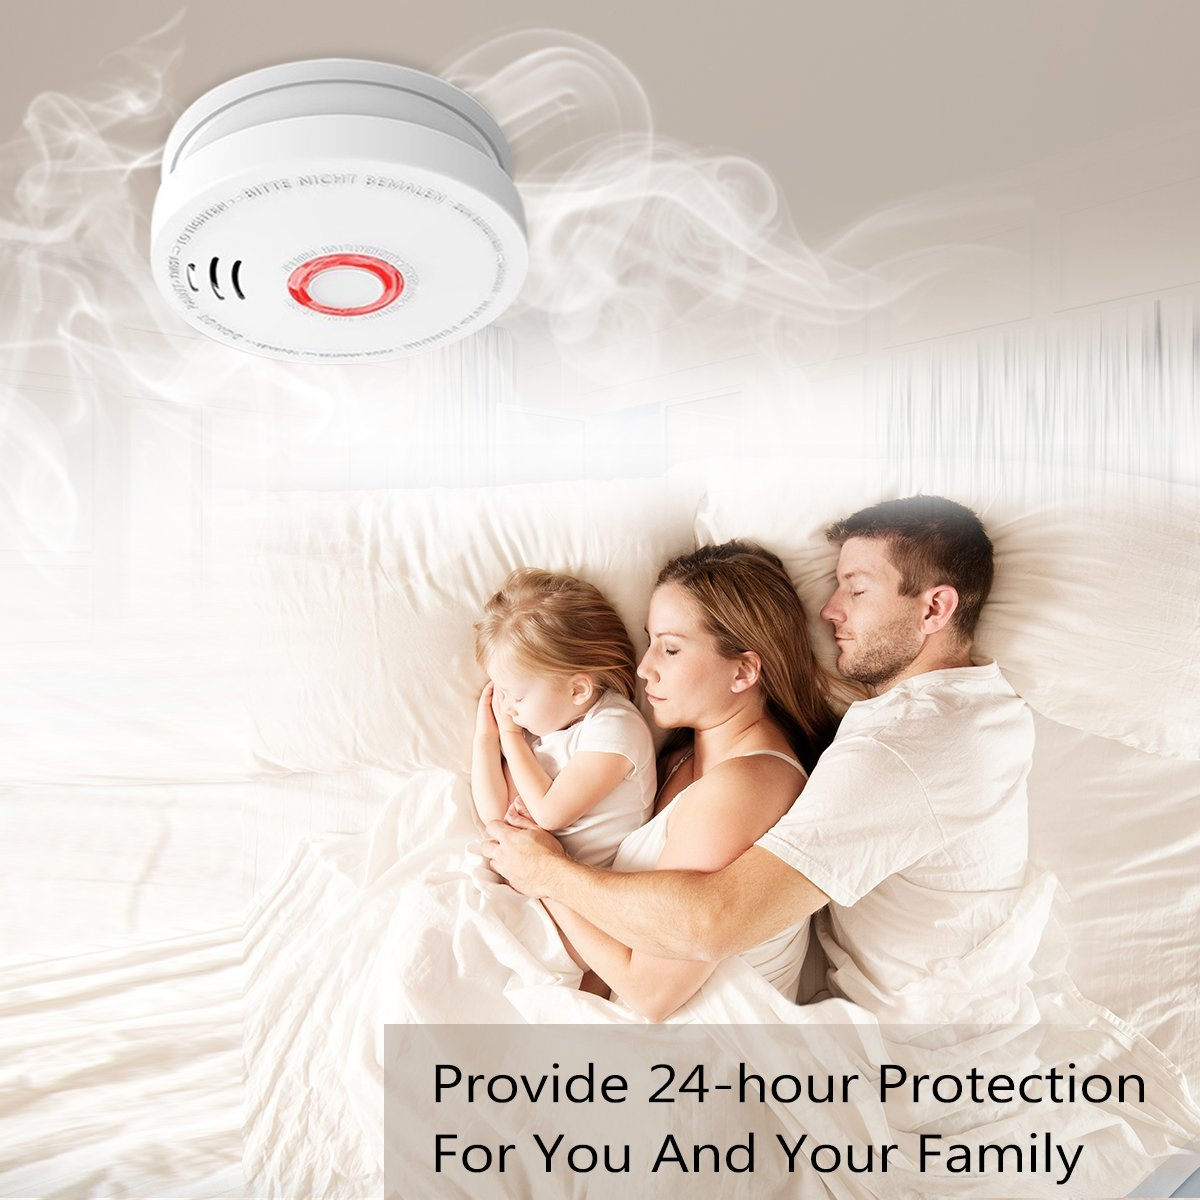 Smoke Alarm Fire Alarm Smoke Detector with Test Button 9 Volt Battery-Operated Photoelectric Smoke Alarms for Bedroom,Kitchen,Corridor,Bathroom and Hotel,10 Years 2 Pack Smoke Alarm with UL Listed by Askont (Image #4)